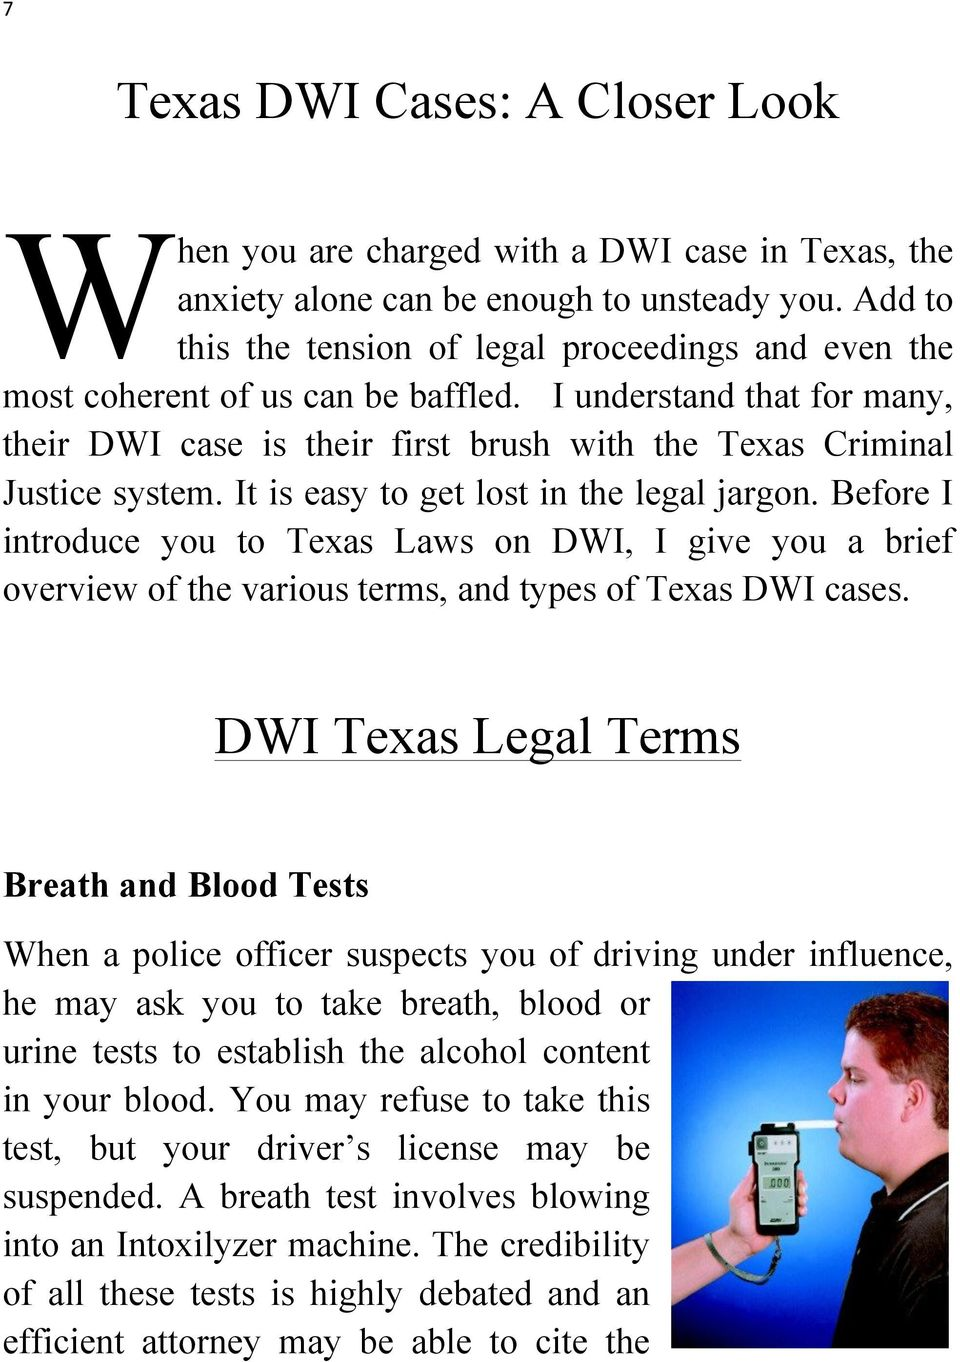 It is easy to get lost in the legal jargon. Before I introduce you to Texas Laws on DWI, I give you a brief overview of the various terms, and types of Texas DWI cases.